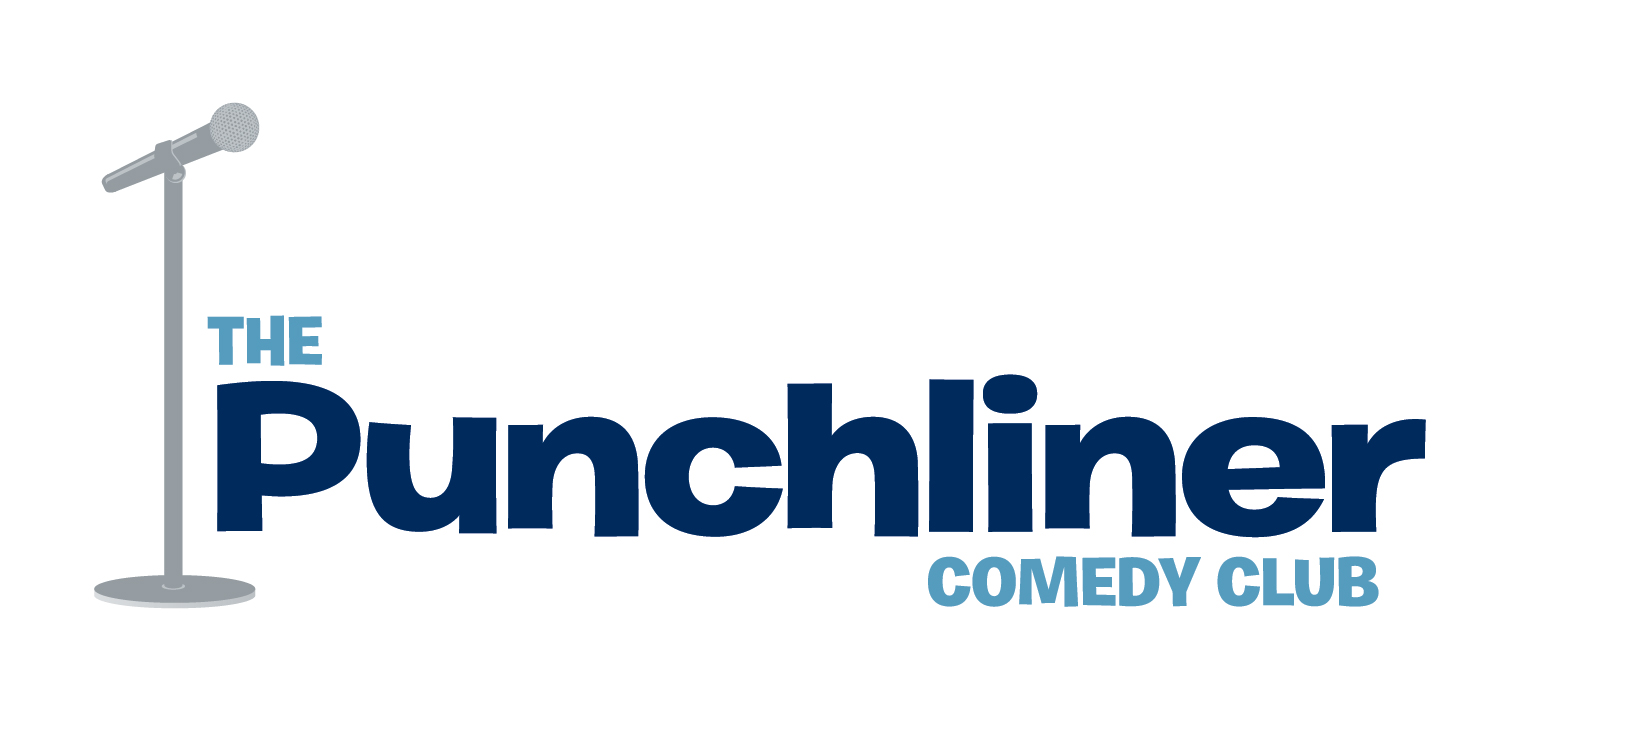 That's A Lot Of Laughs! Carnival Cruise Line To Host Record 25,000 Shows At Fleetwide Punchliner Comedy Clubs In 2017